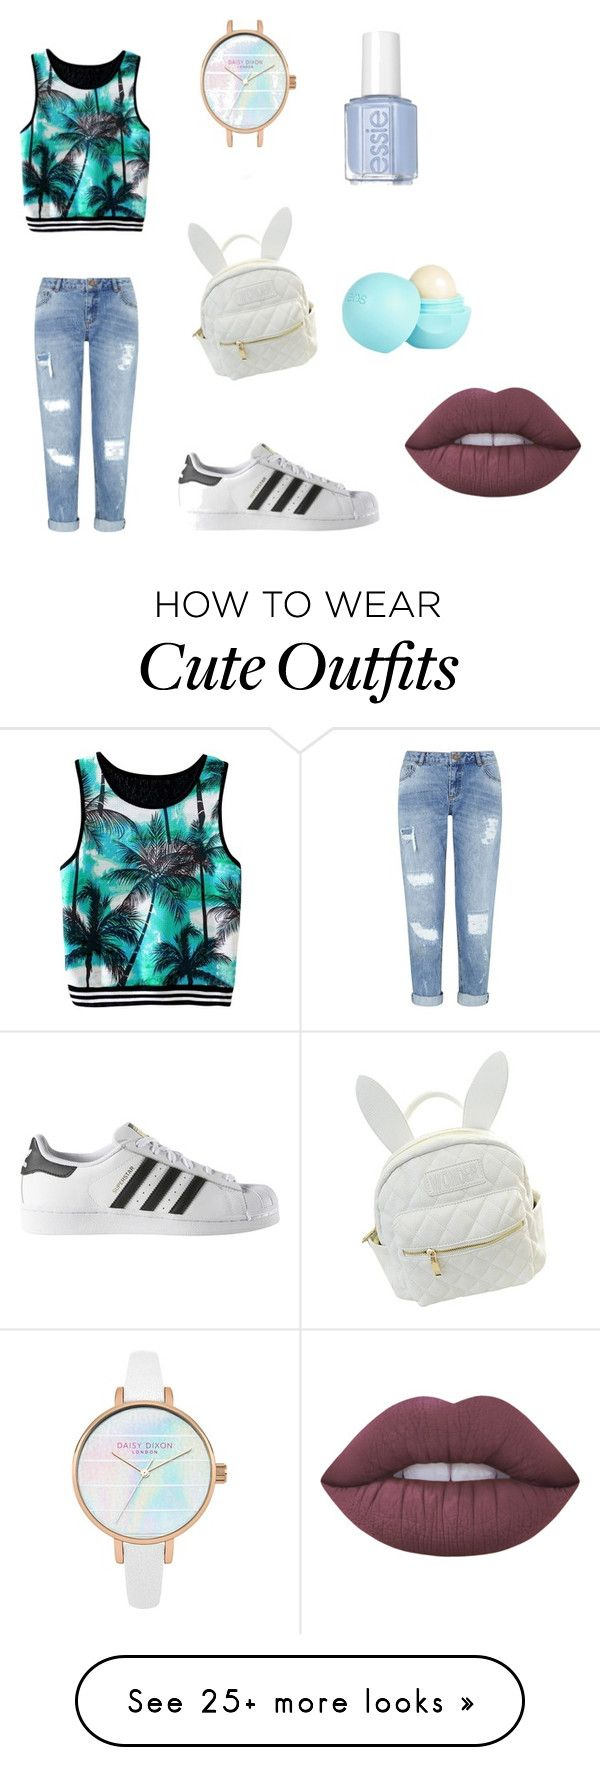 """stoere outfit"" by tara-quaedvlieg on Polyvore featuring Miss Selfridge, adidas, cutekawaii, River Island and Lime Crime"